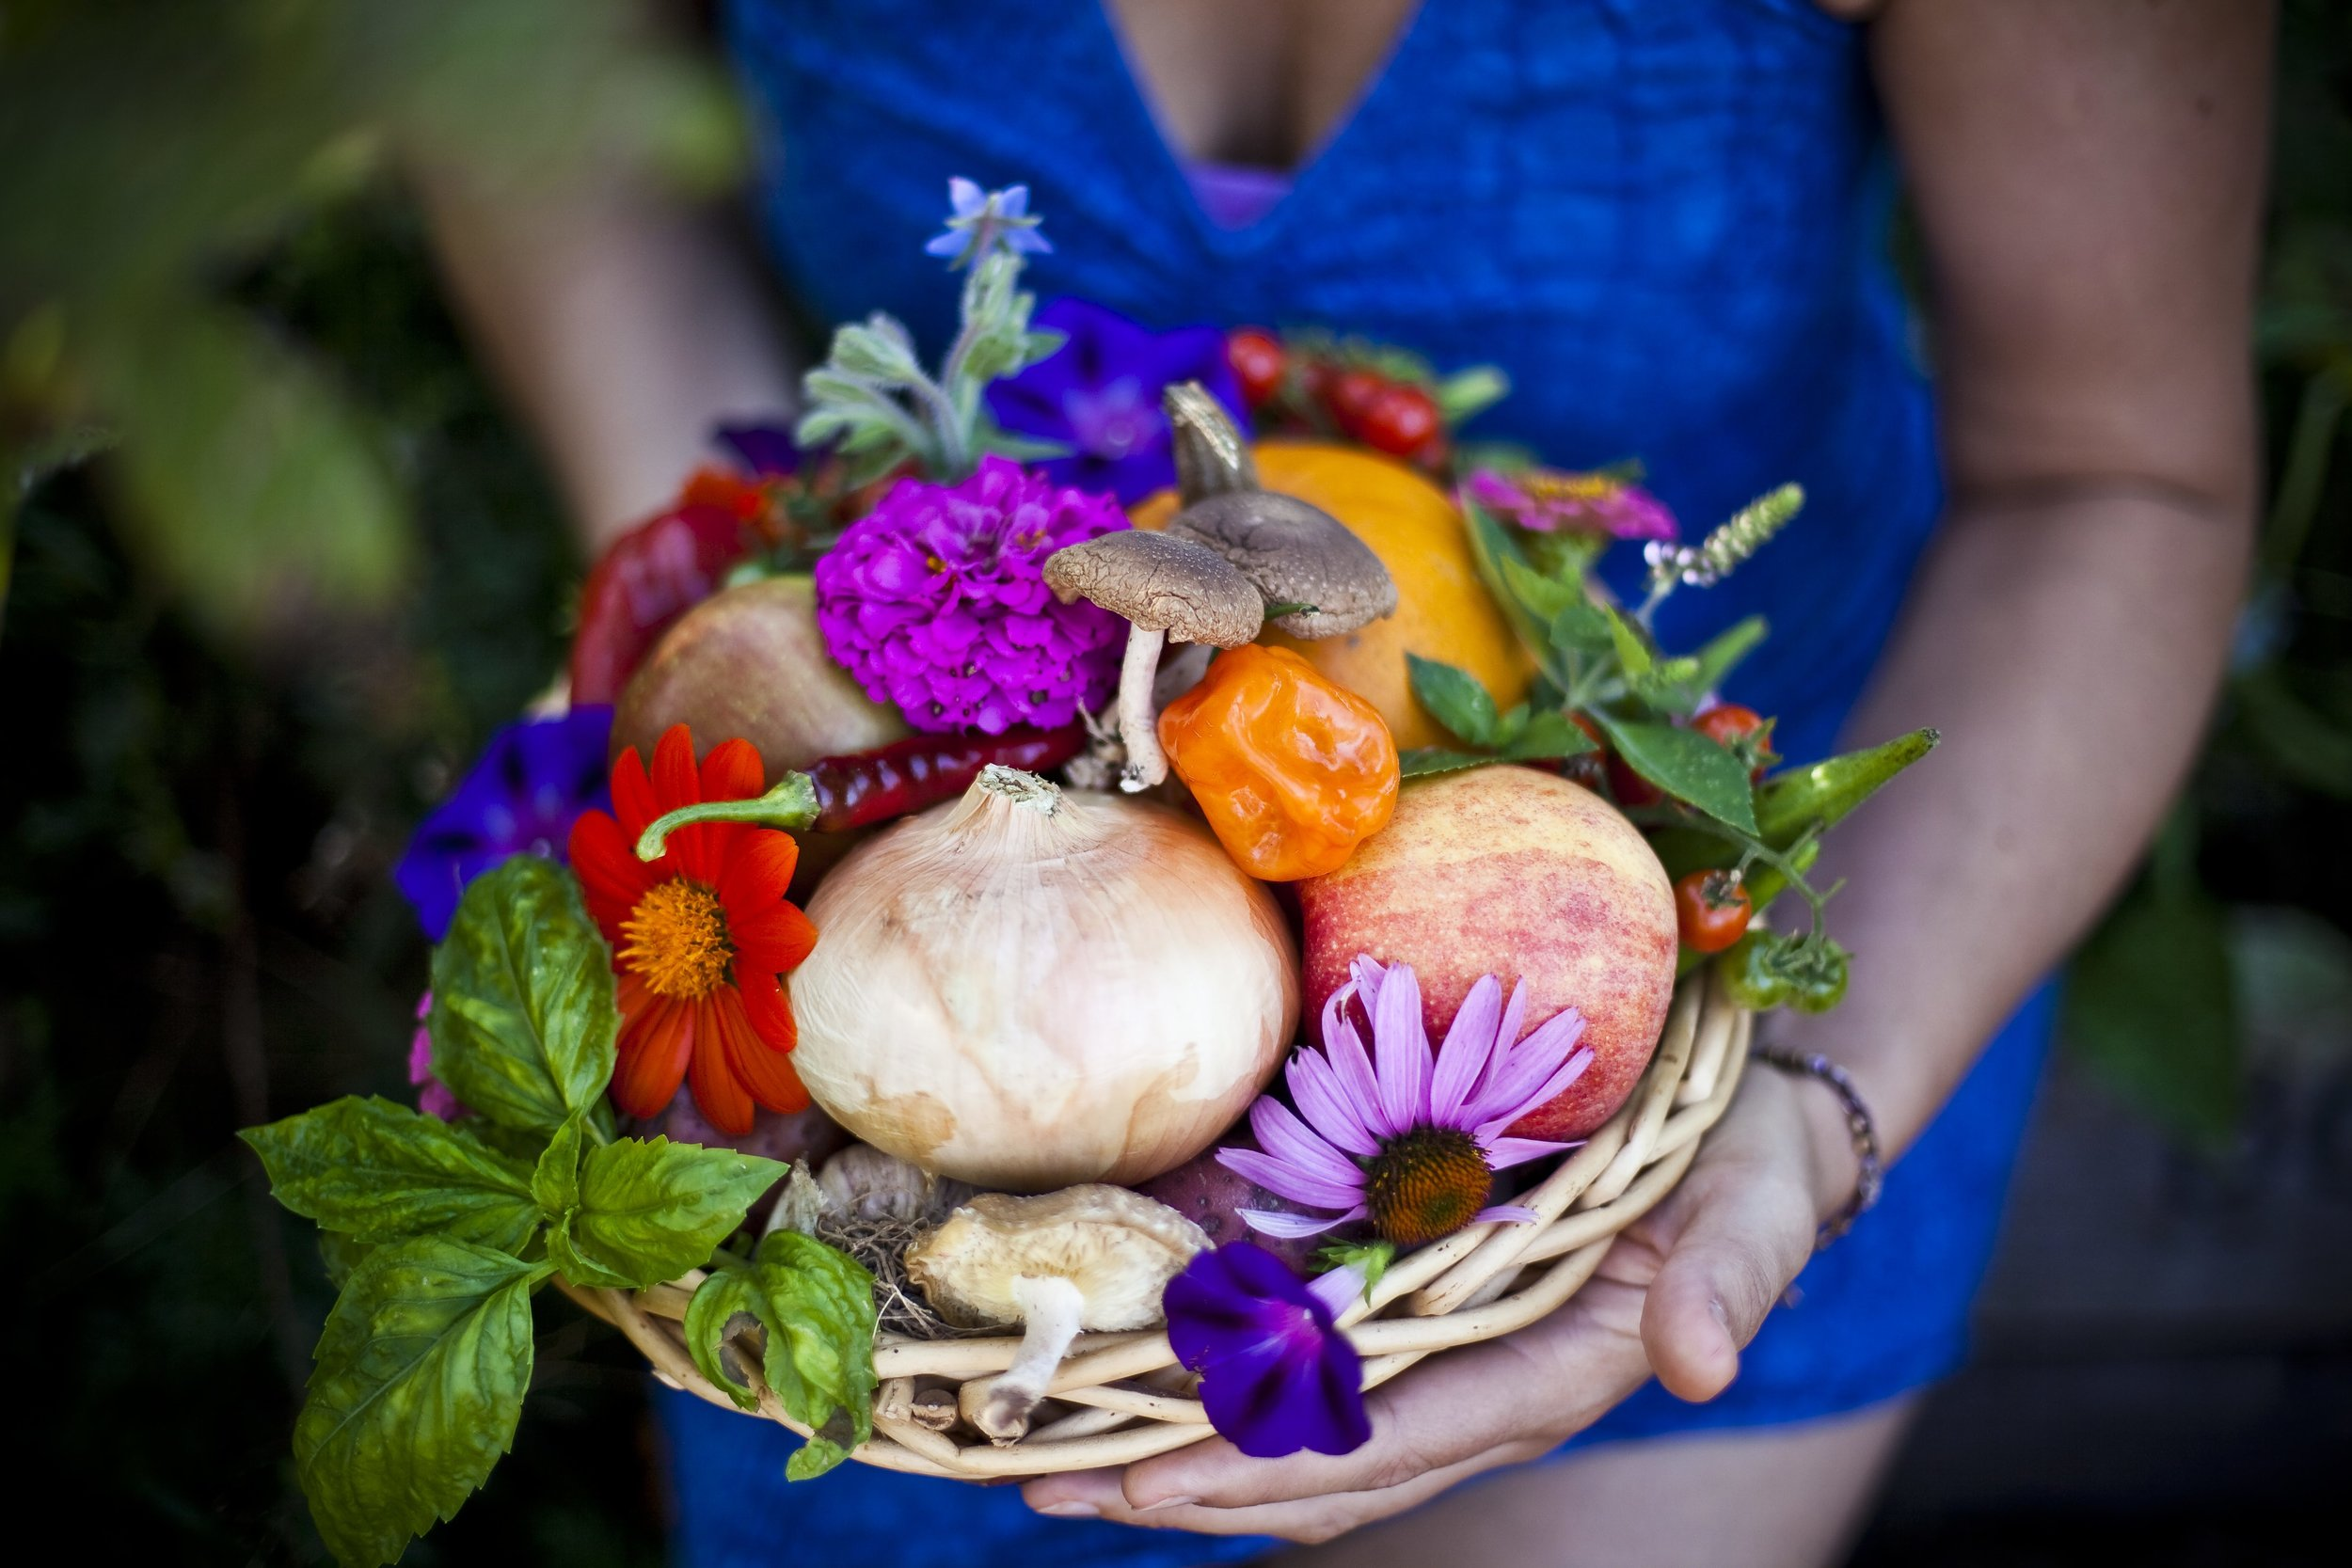 the-eco-institute-chapel-hill-nc-rising-earth-permaculture-environmental-education-gap-year-gorgeous-garden-basket-harvest.jpg